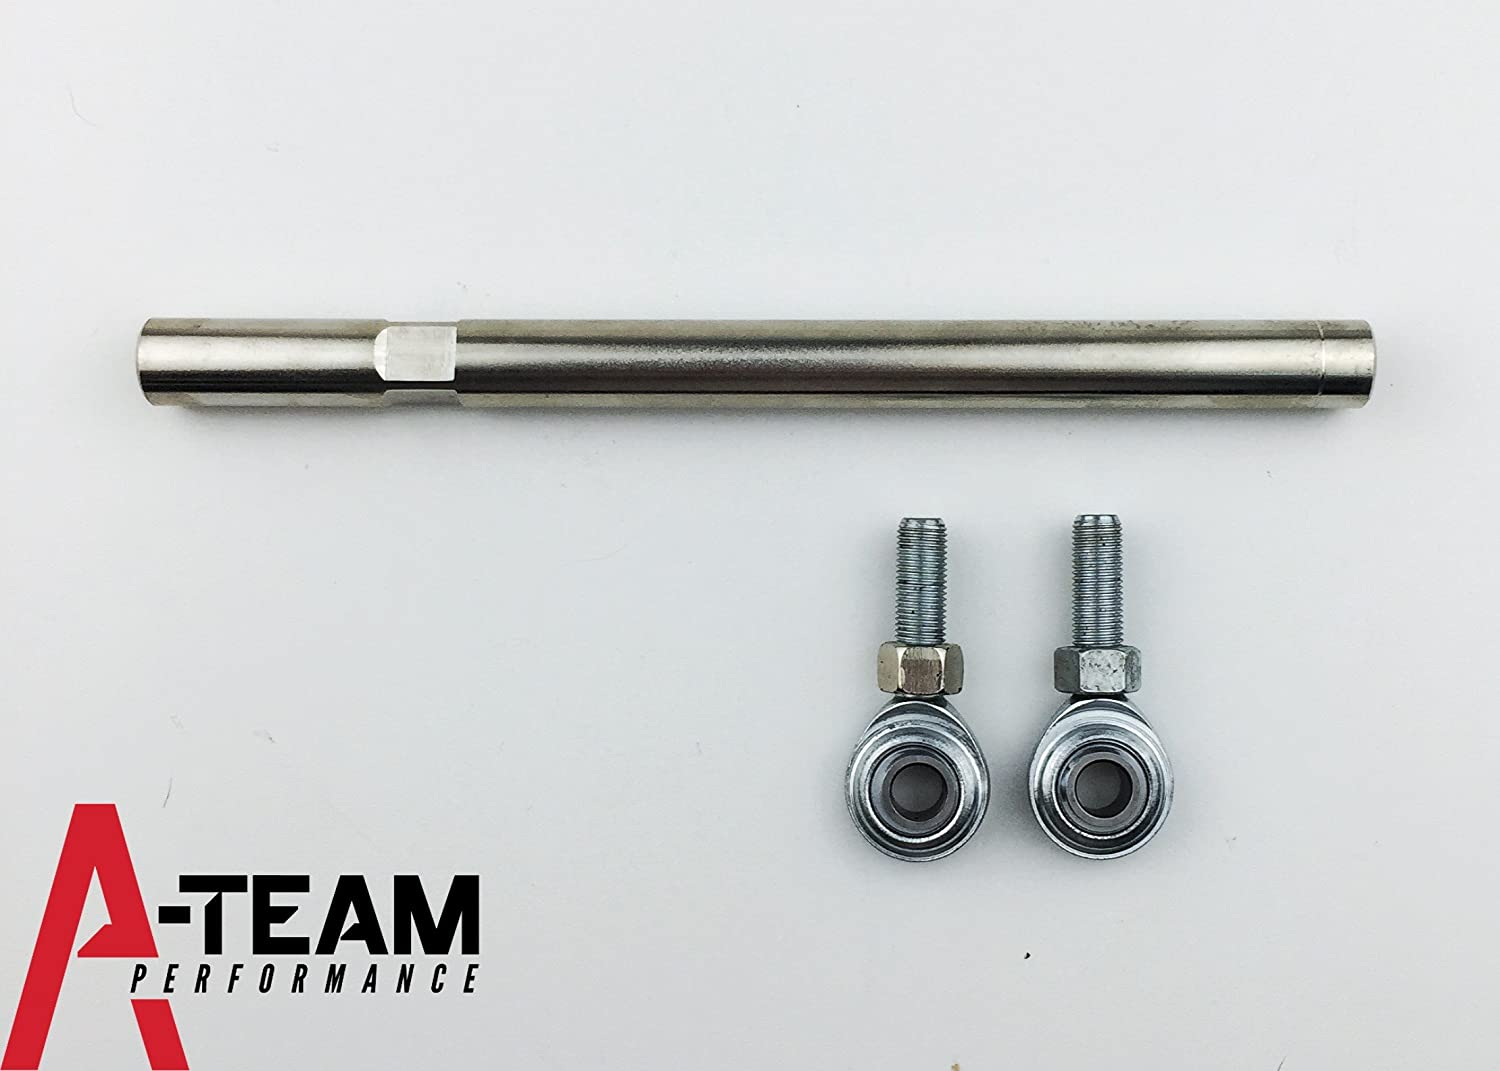 Replacement Parts A-Team Performance 8.5 Adjustable Tensioning Rod ...